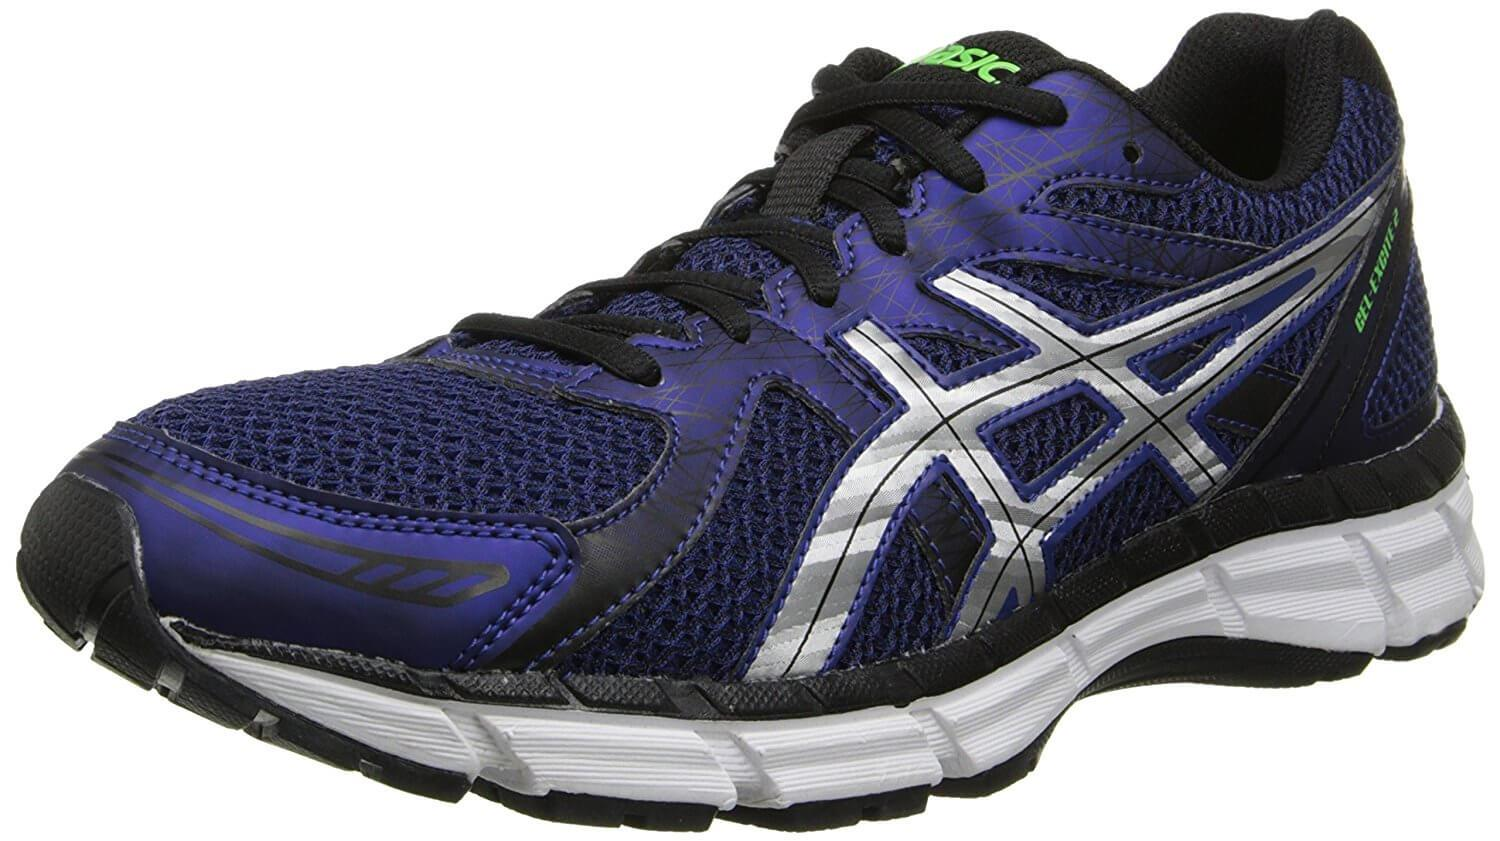 A three quarter view of the Asics Gel Excite 2